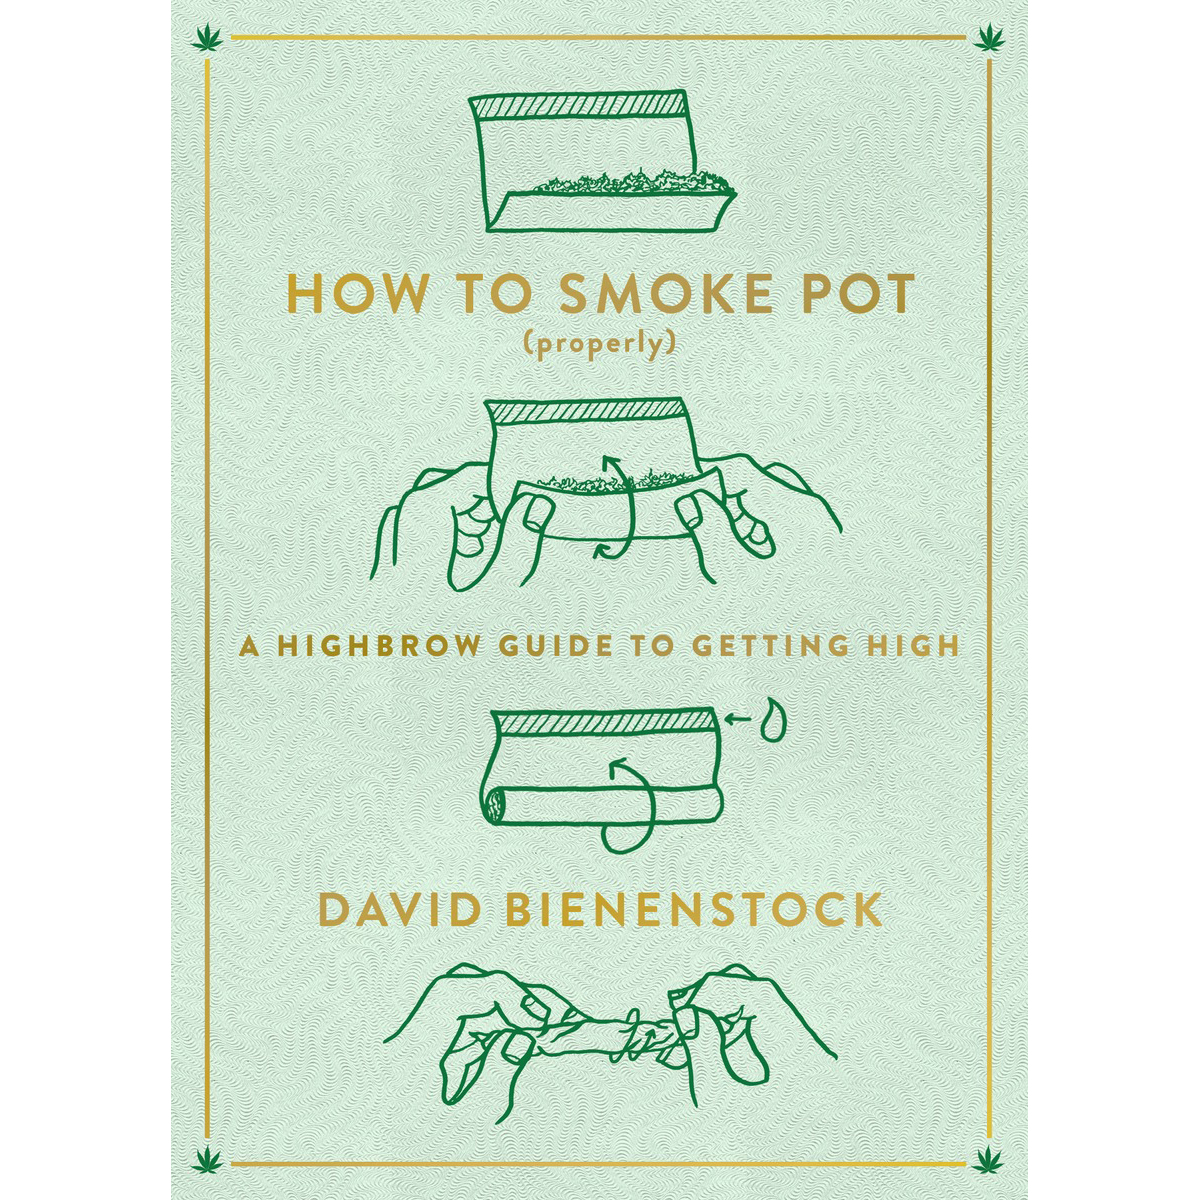 Consider This Your Textbook for Marijuana 101